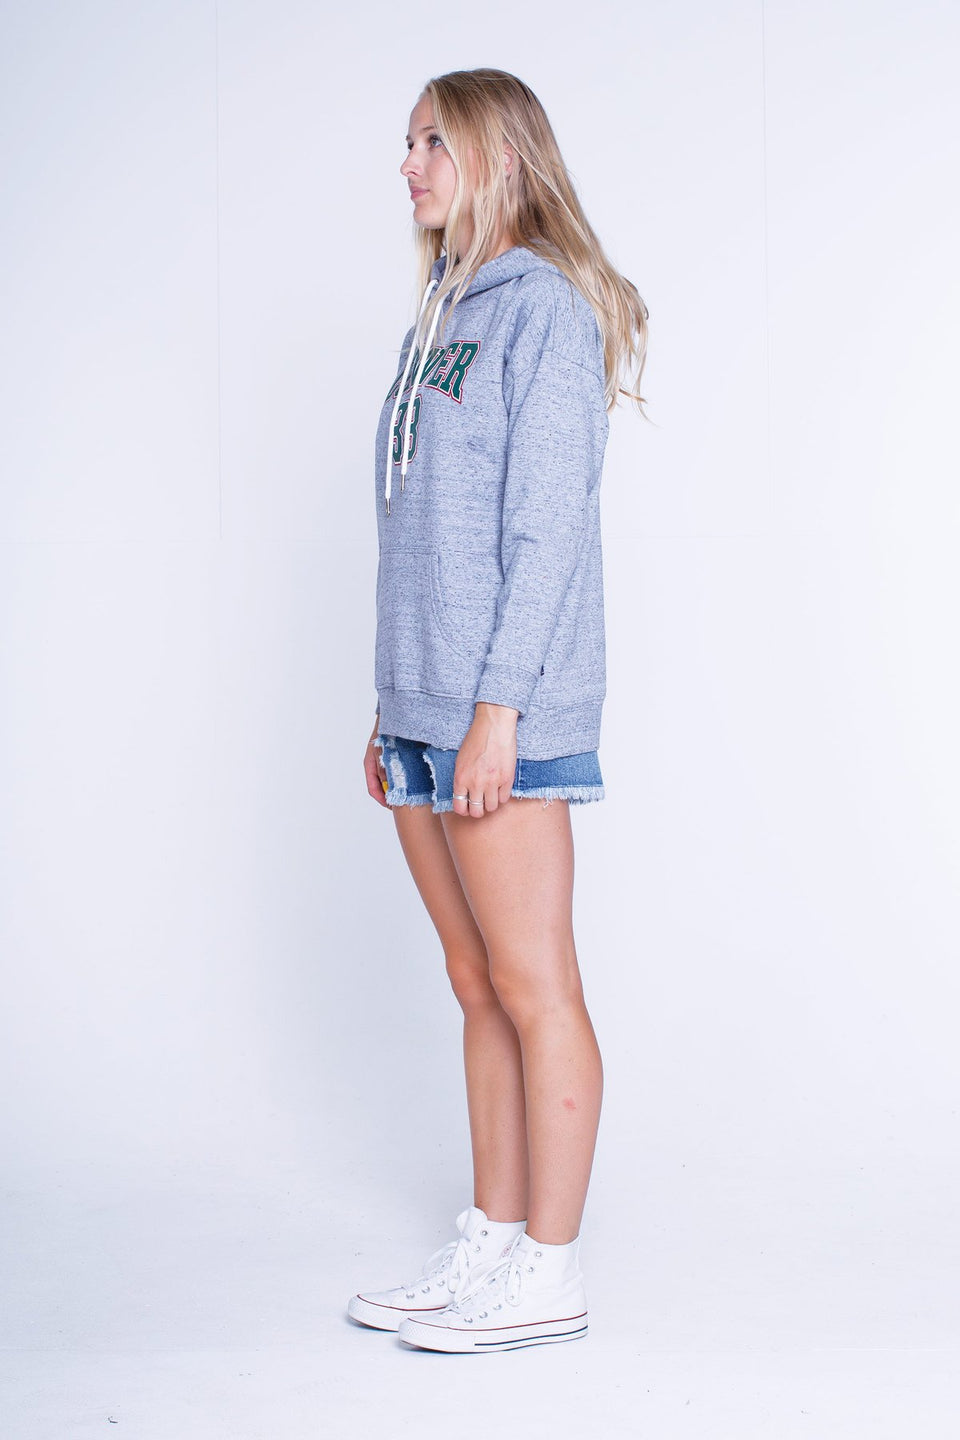 Lower Hettie Hood Blaster Grey Marle